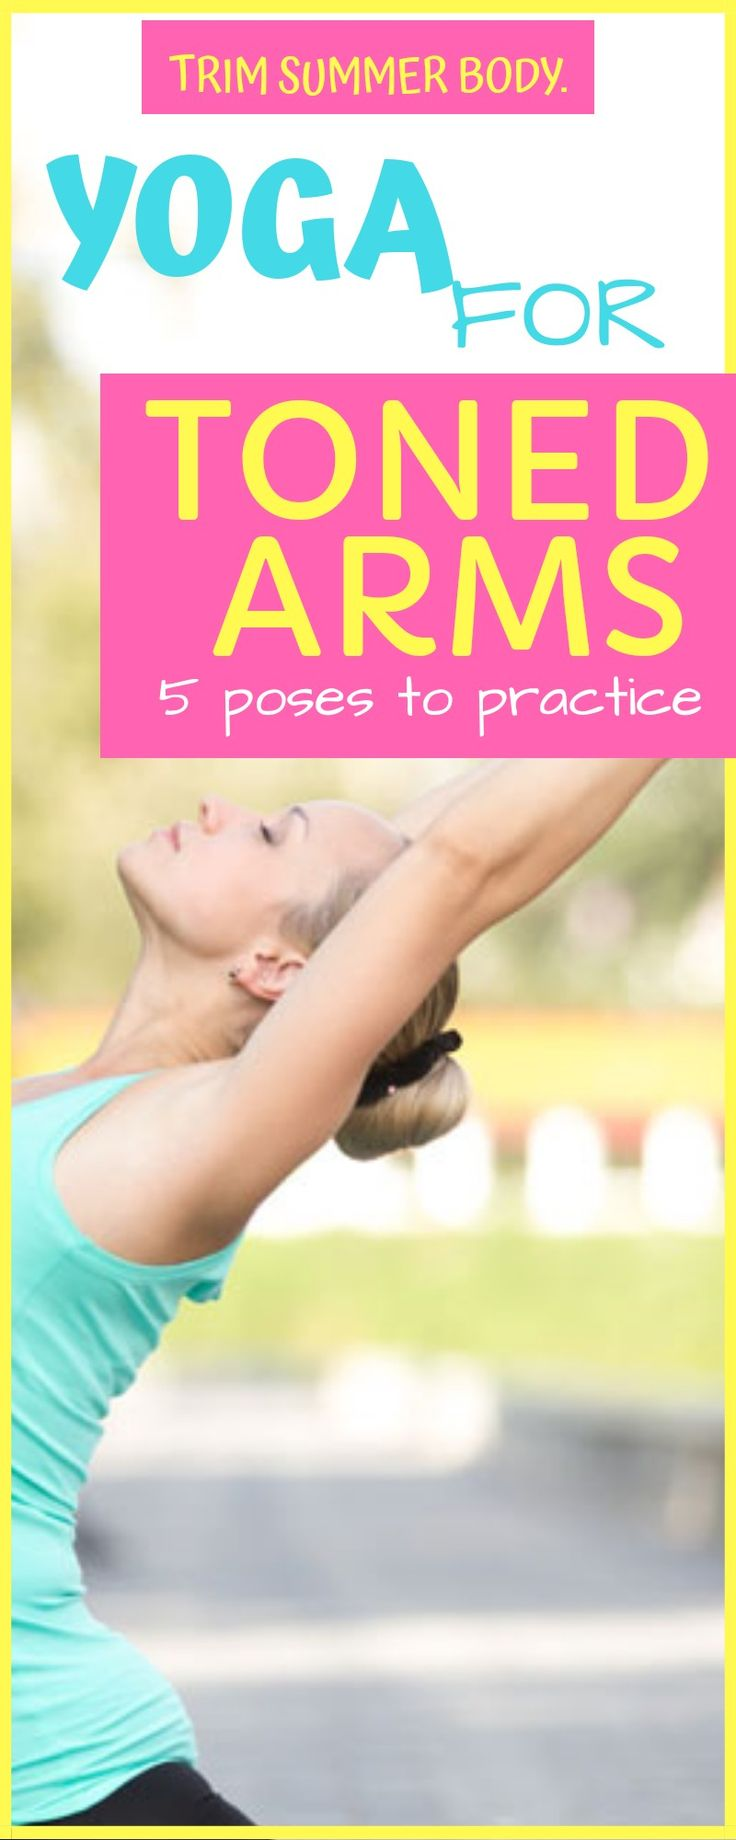 yoga for toned arms - 5 poses to reduce arm fat.